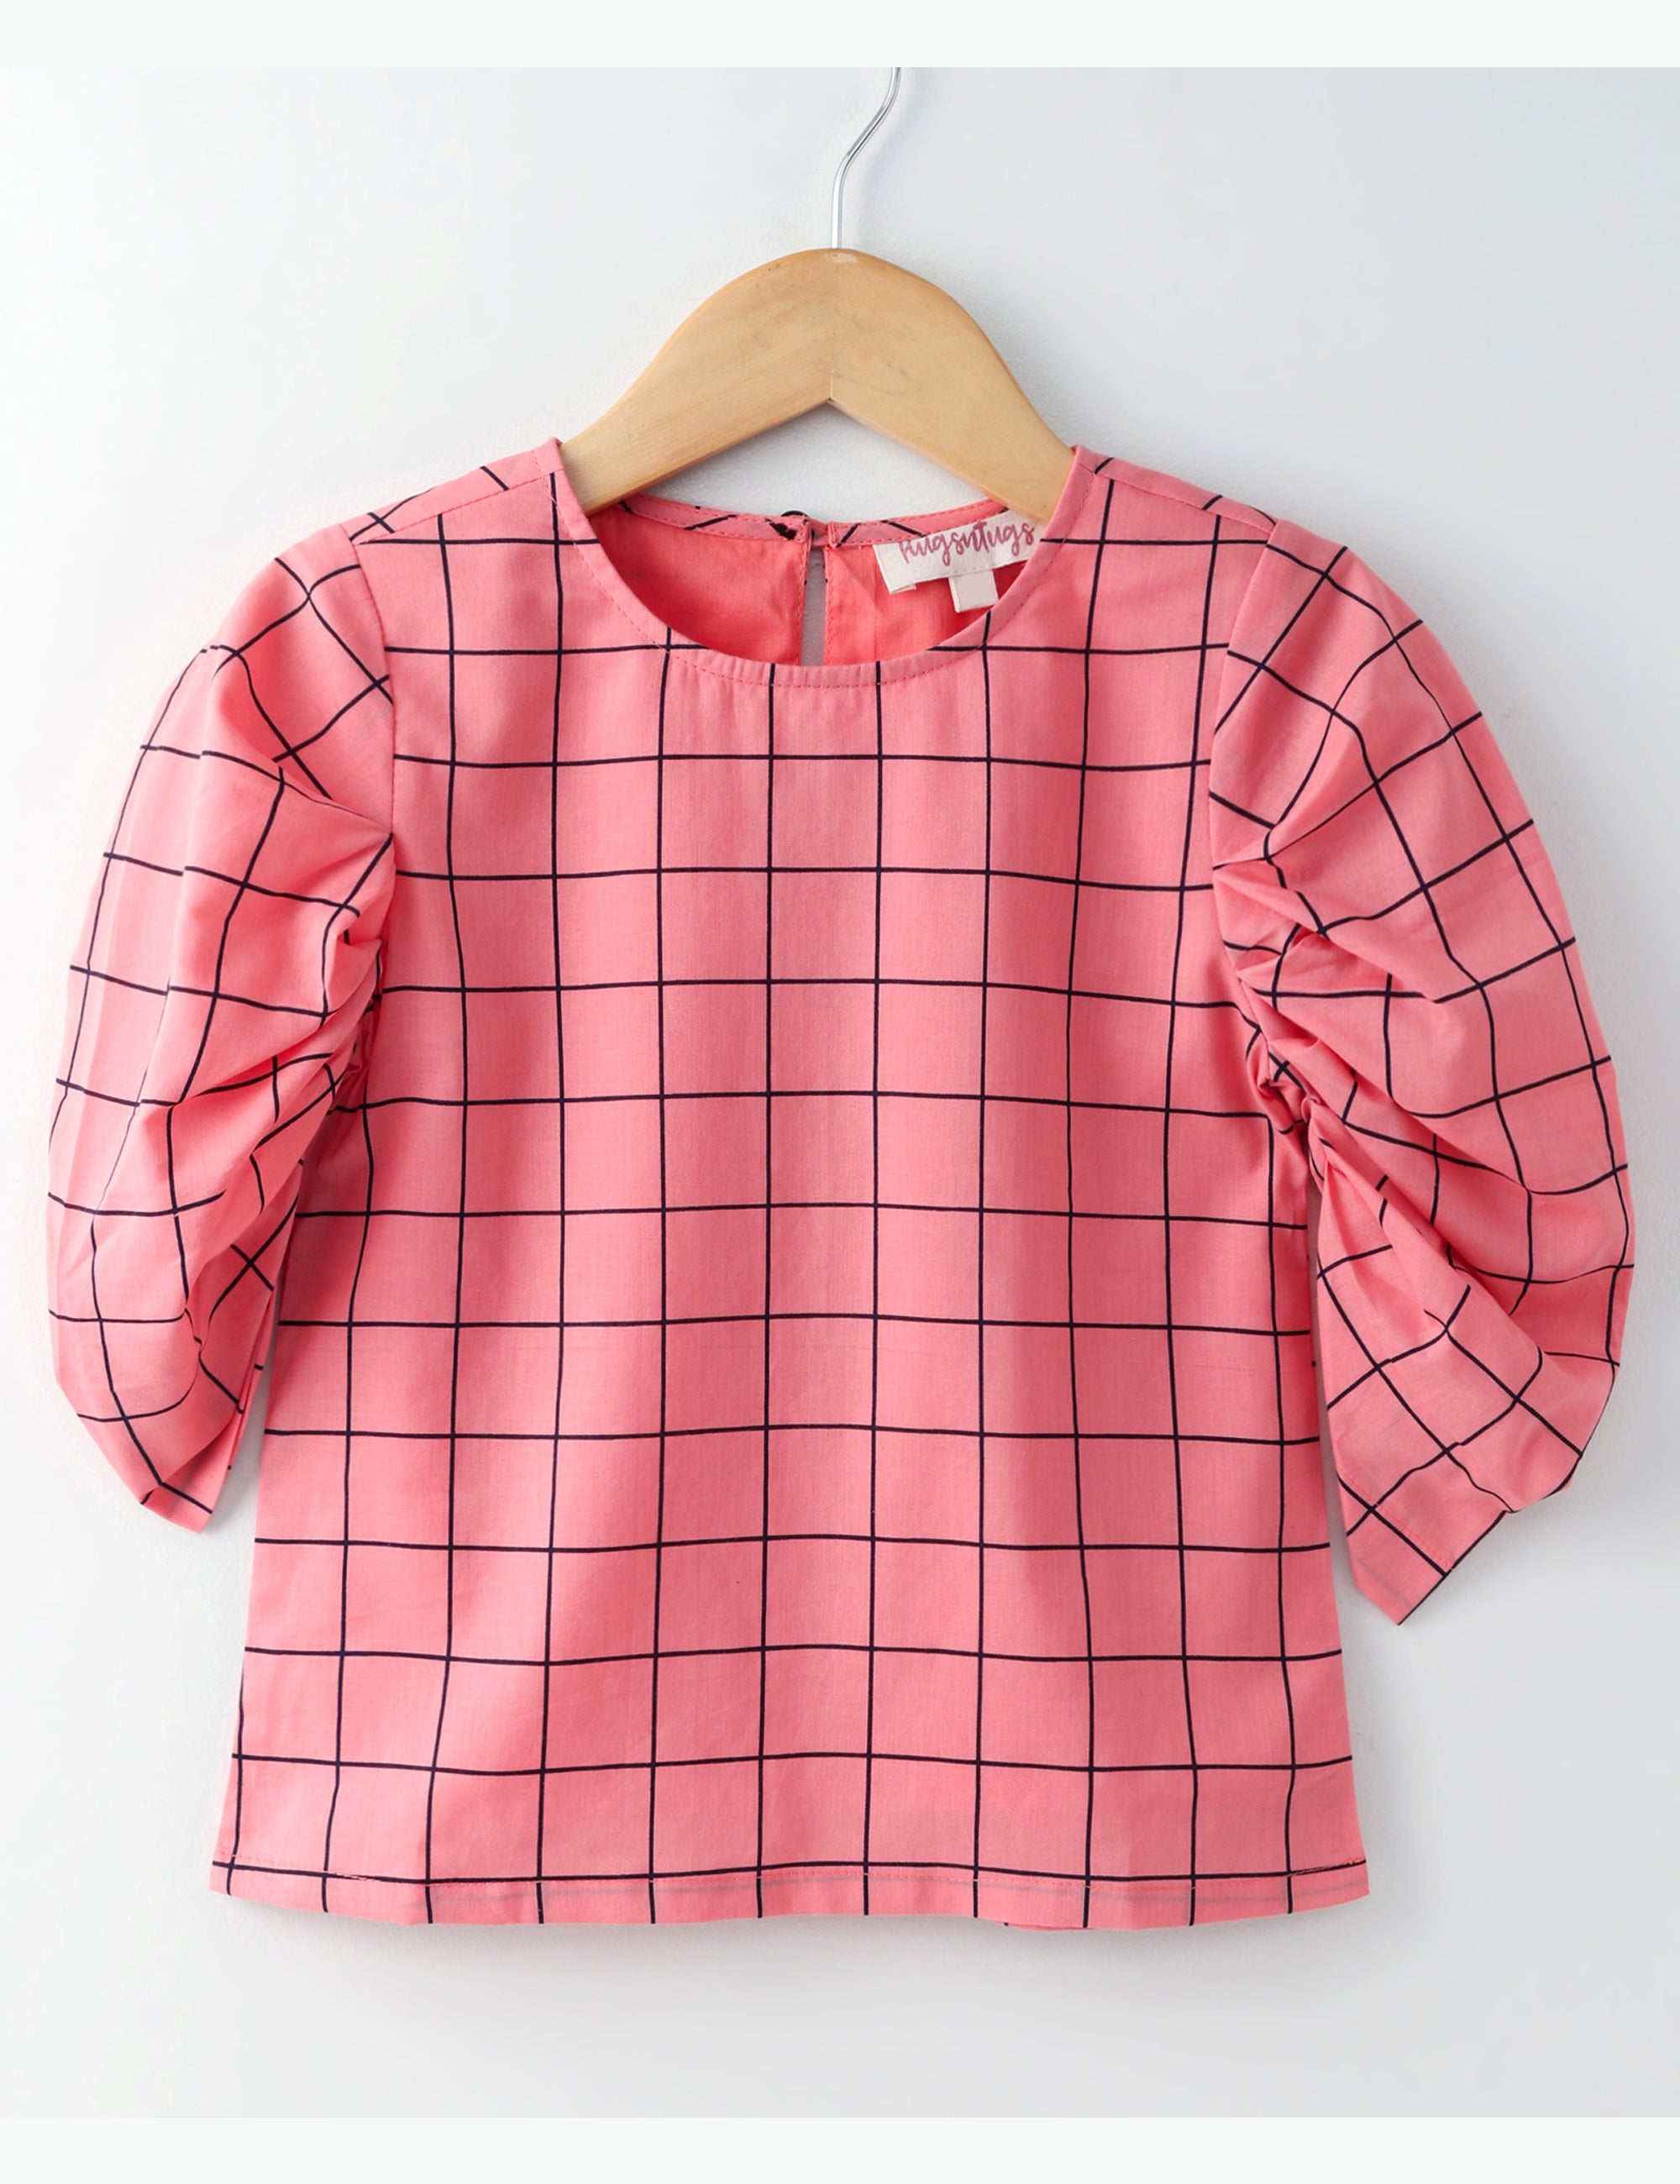 Gathered Full Sleeves Checked Top - Peach